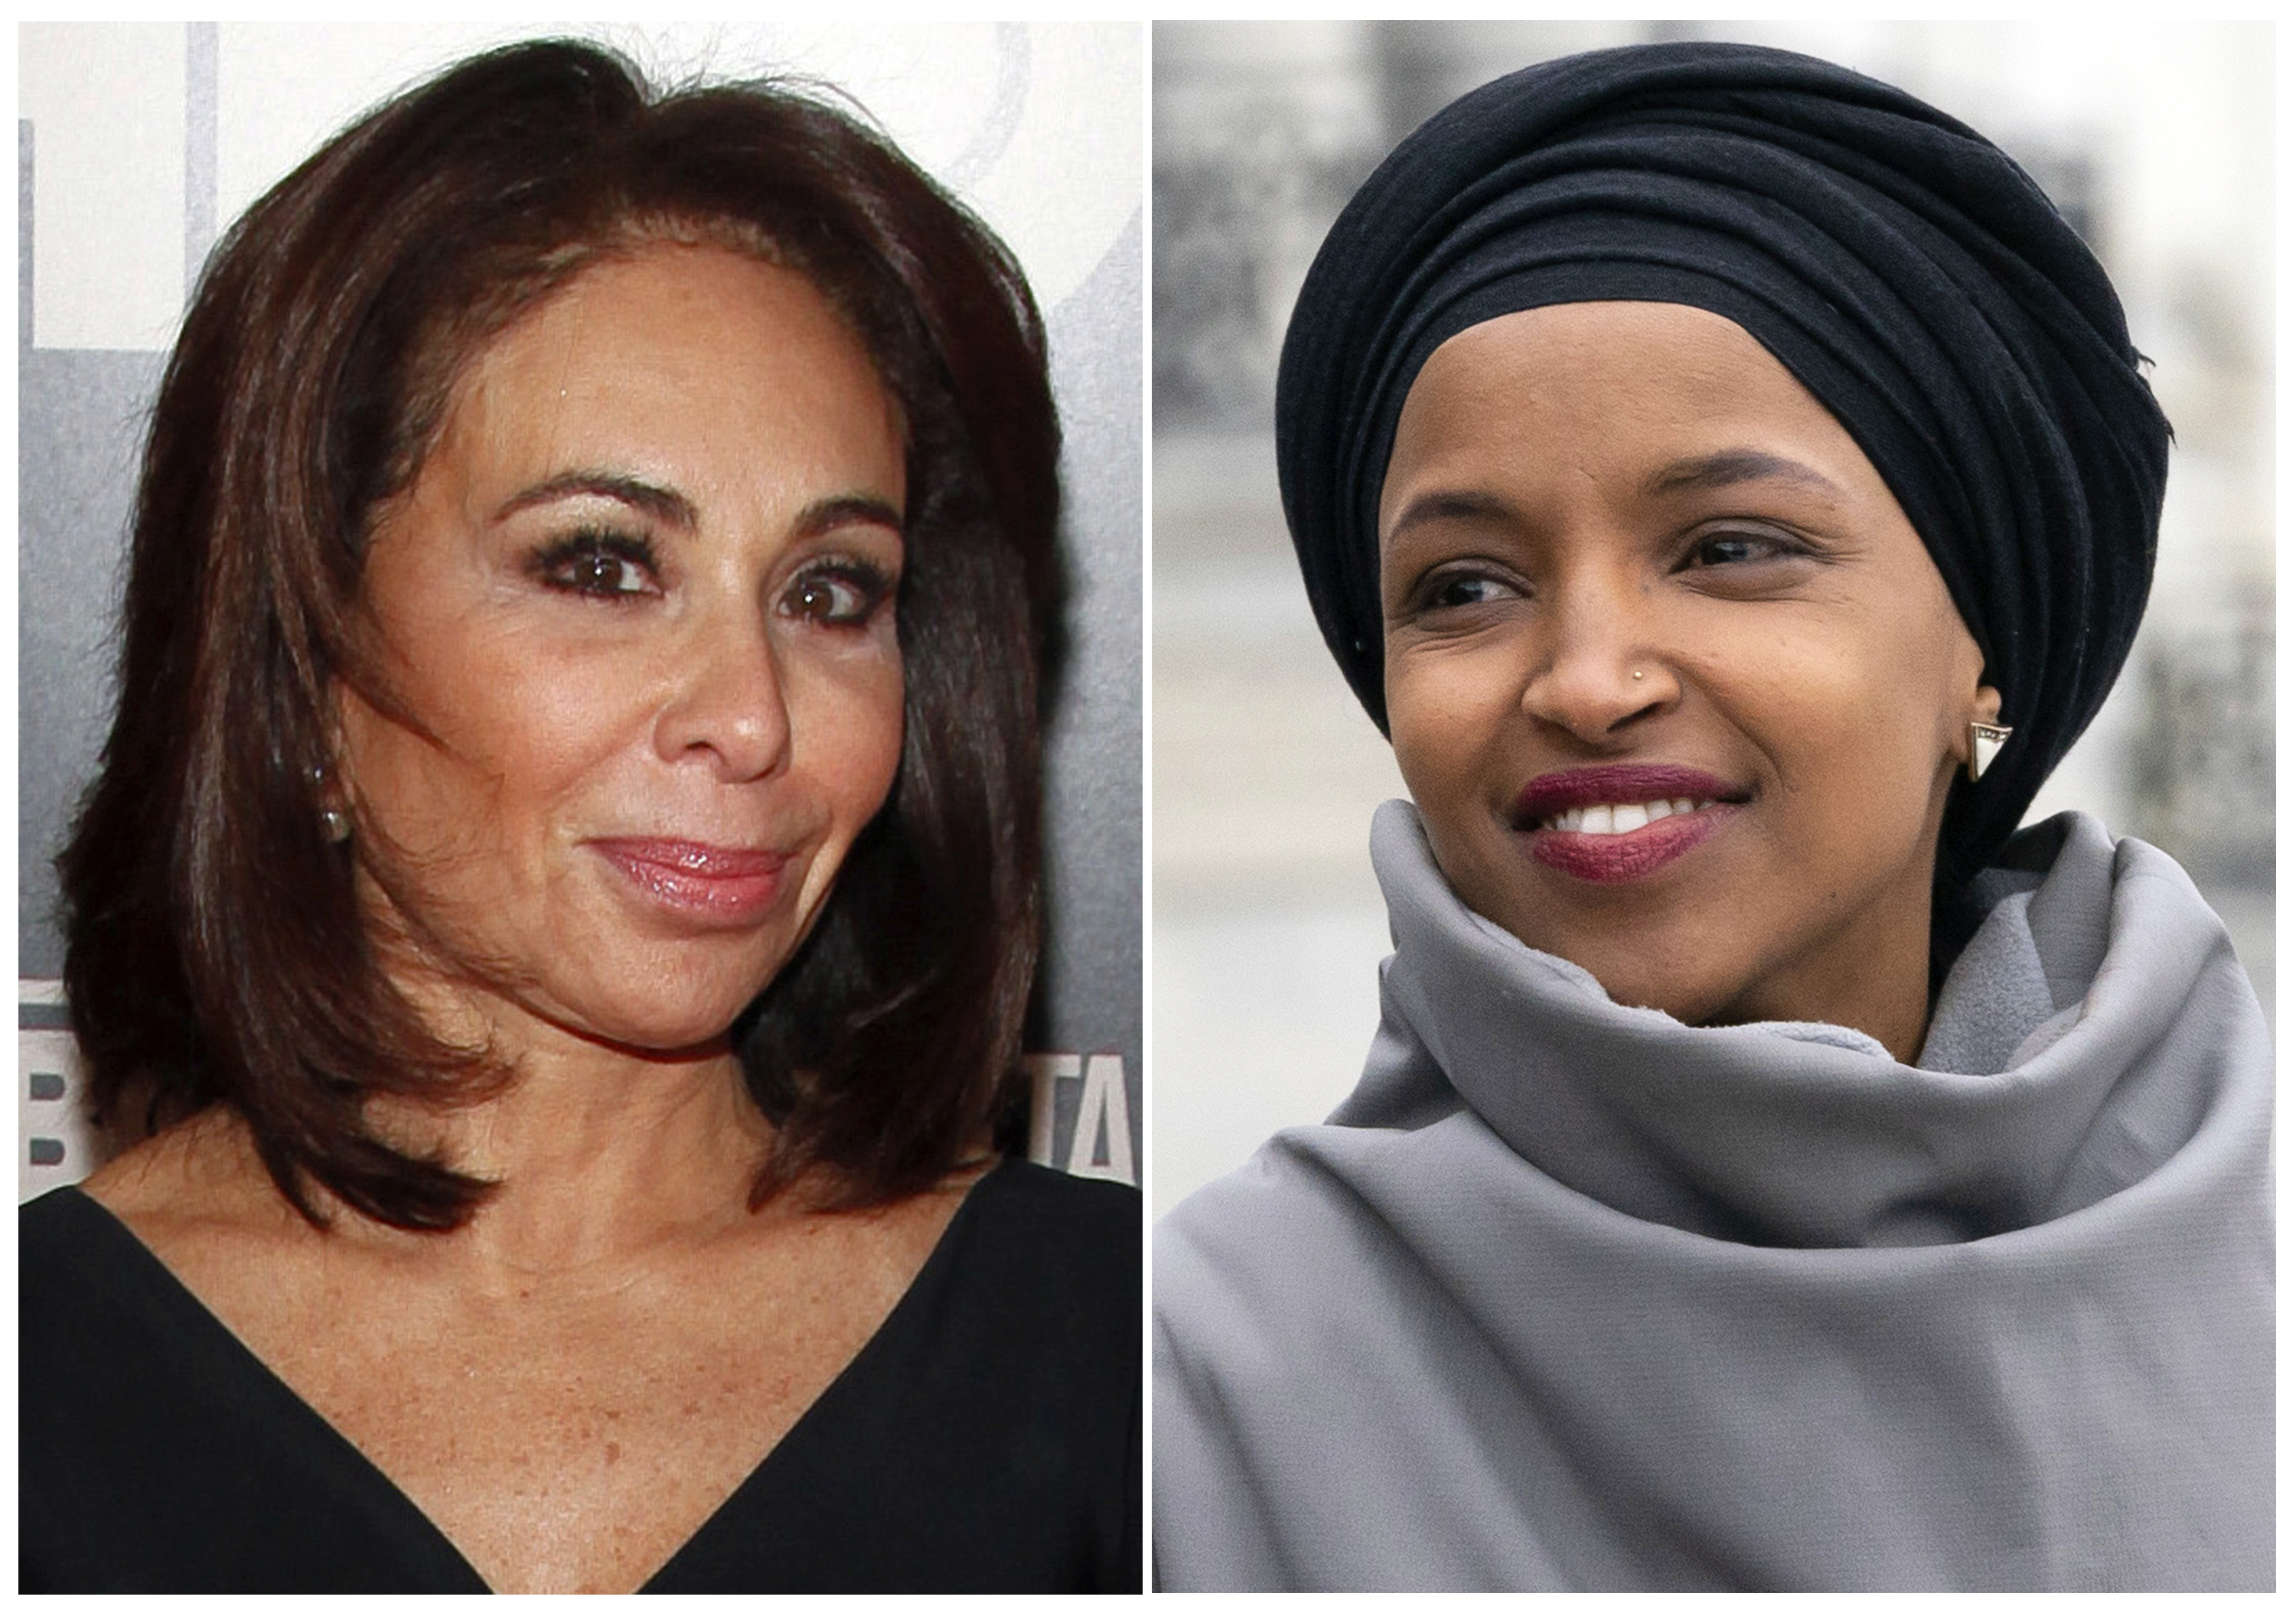 Fox News Host Jeanine Pirro Pulled Off Air Following Comments On Rep Ilhan Omar